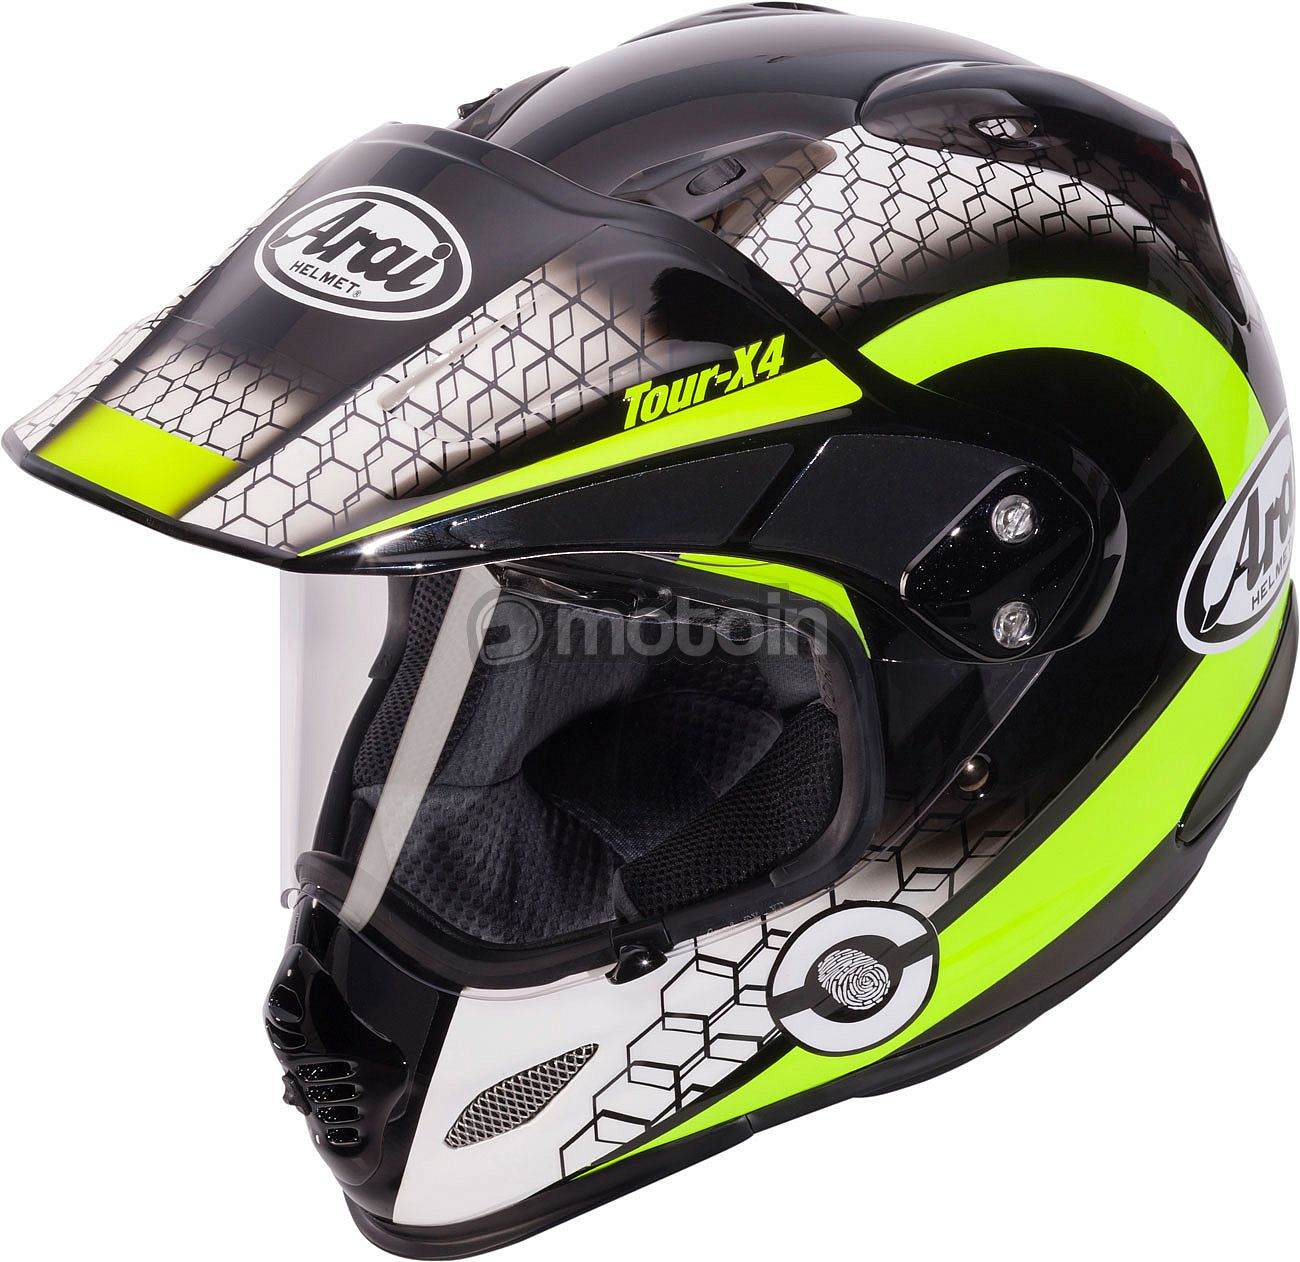 arai tour x4 mesh enduro helmet. Black Bedroom Furniture Sets. Home Design Ideas